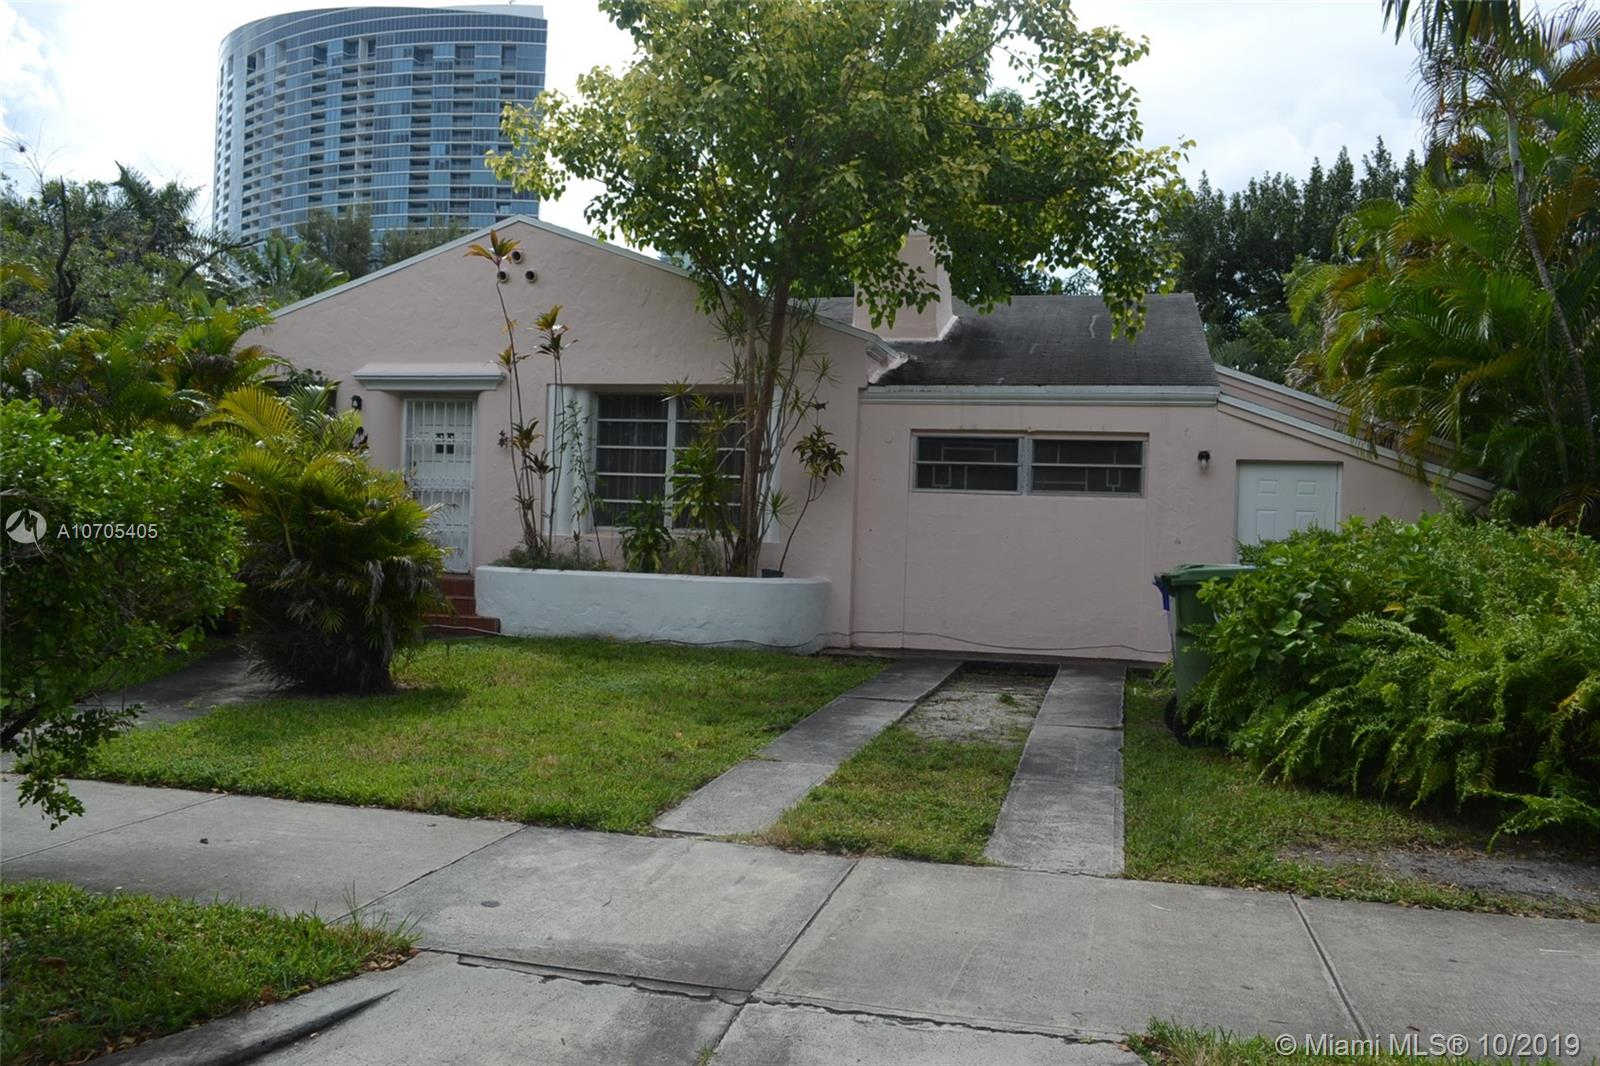 444 NE 39th St, Miami, FL 33137 now has a new price of $2,650!